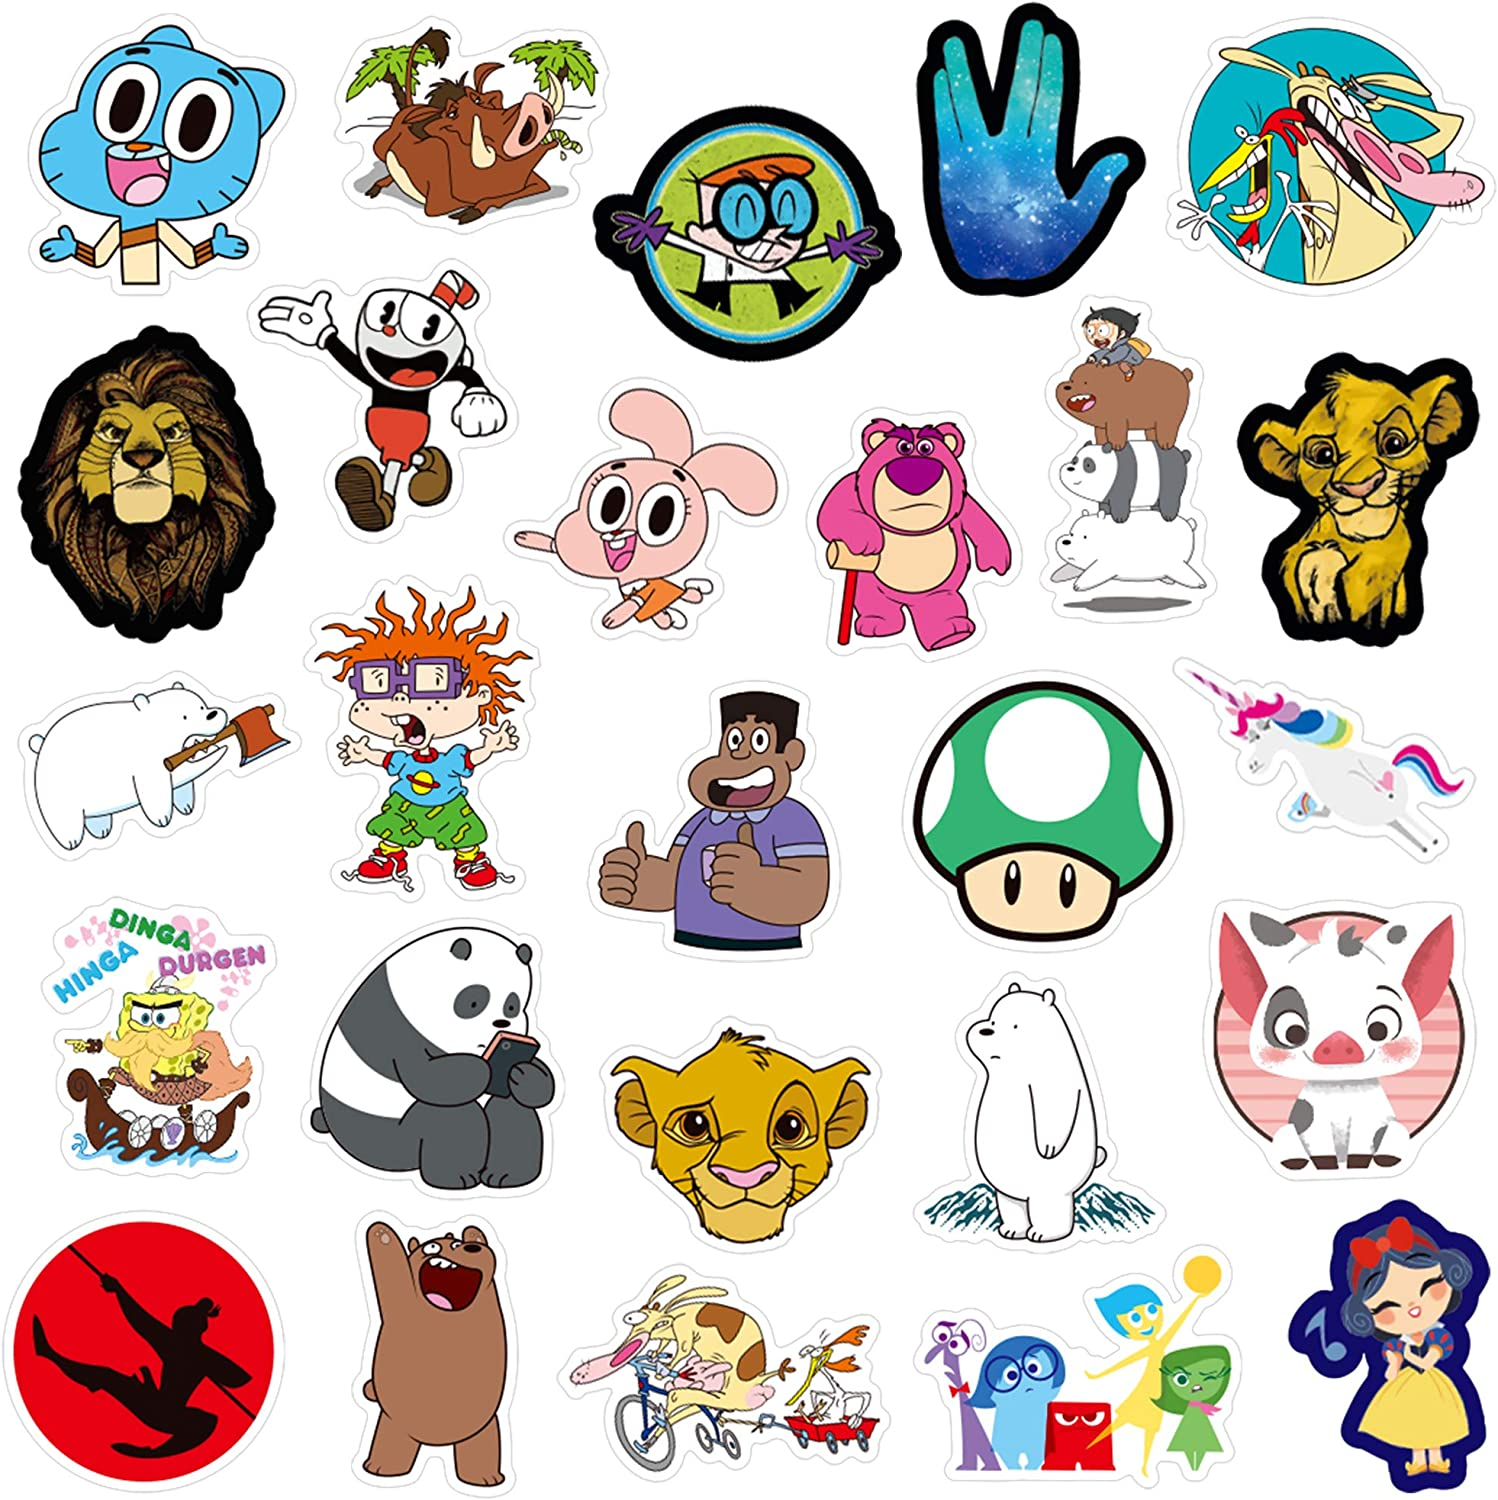 QWDDECO Cute Sticker Pack [101 pcs] Vinyl Stickers for Laptop,Skateboard,Bike,Luggage,PS4,Xbos one,iPhone-Party Favors for Teens,Boys and Girls-Graffiti Decal-Waterproof